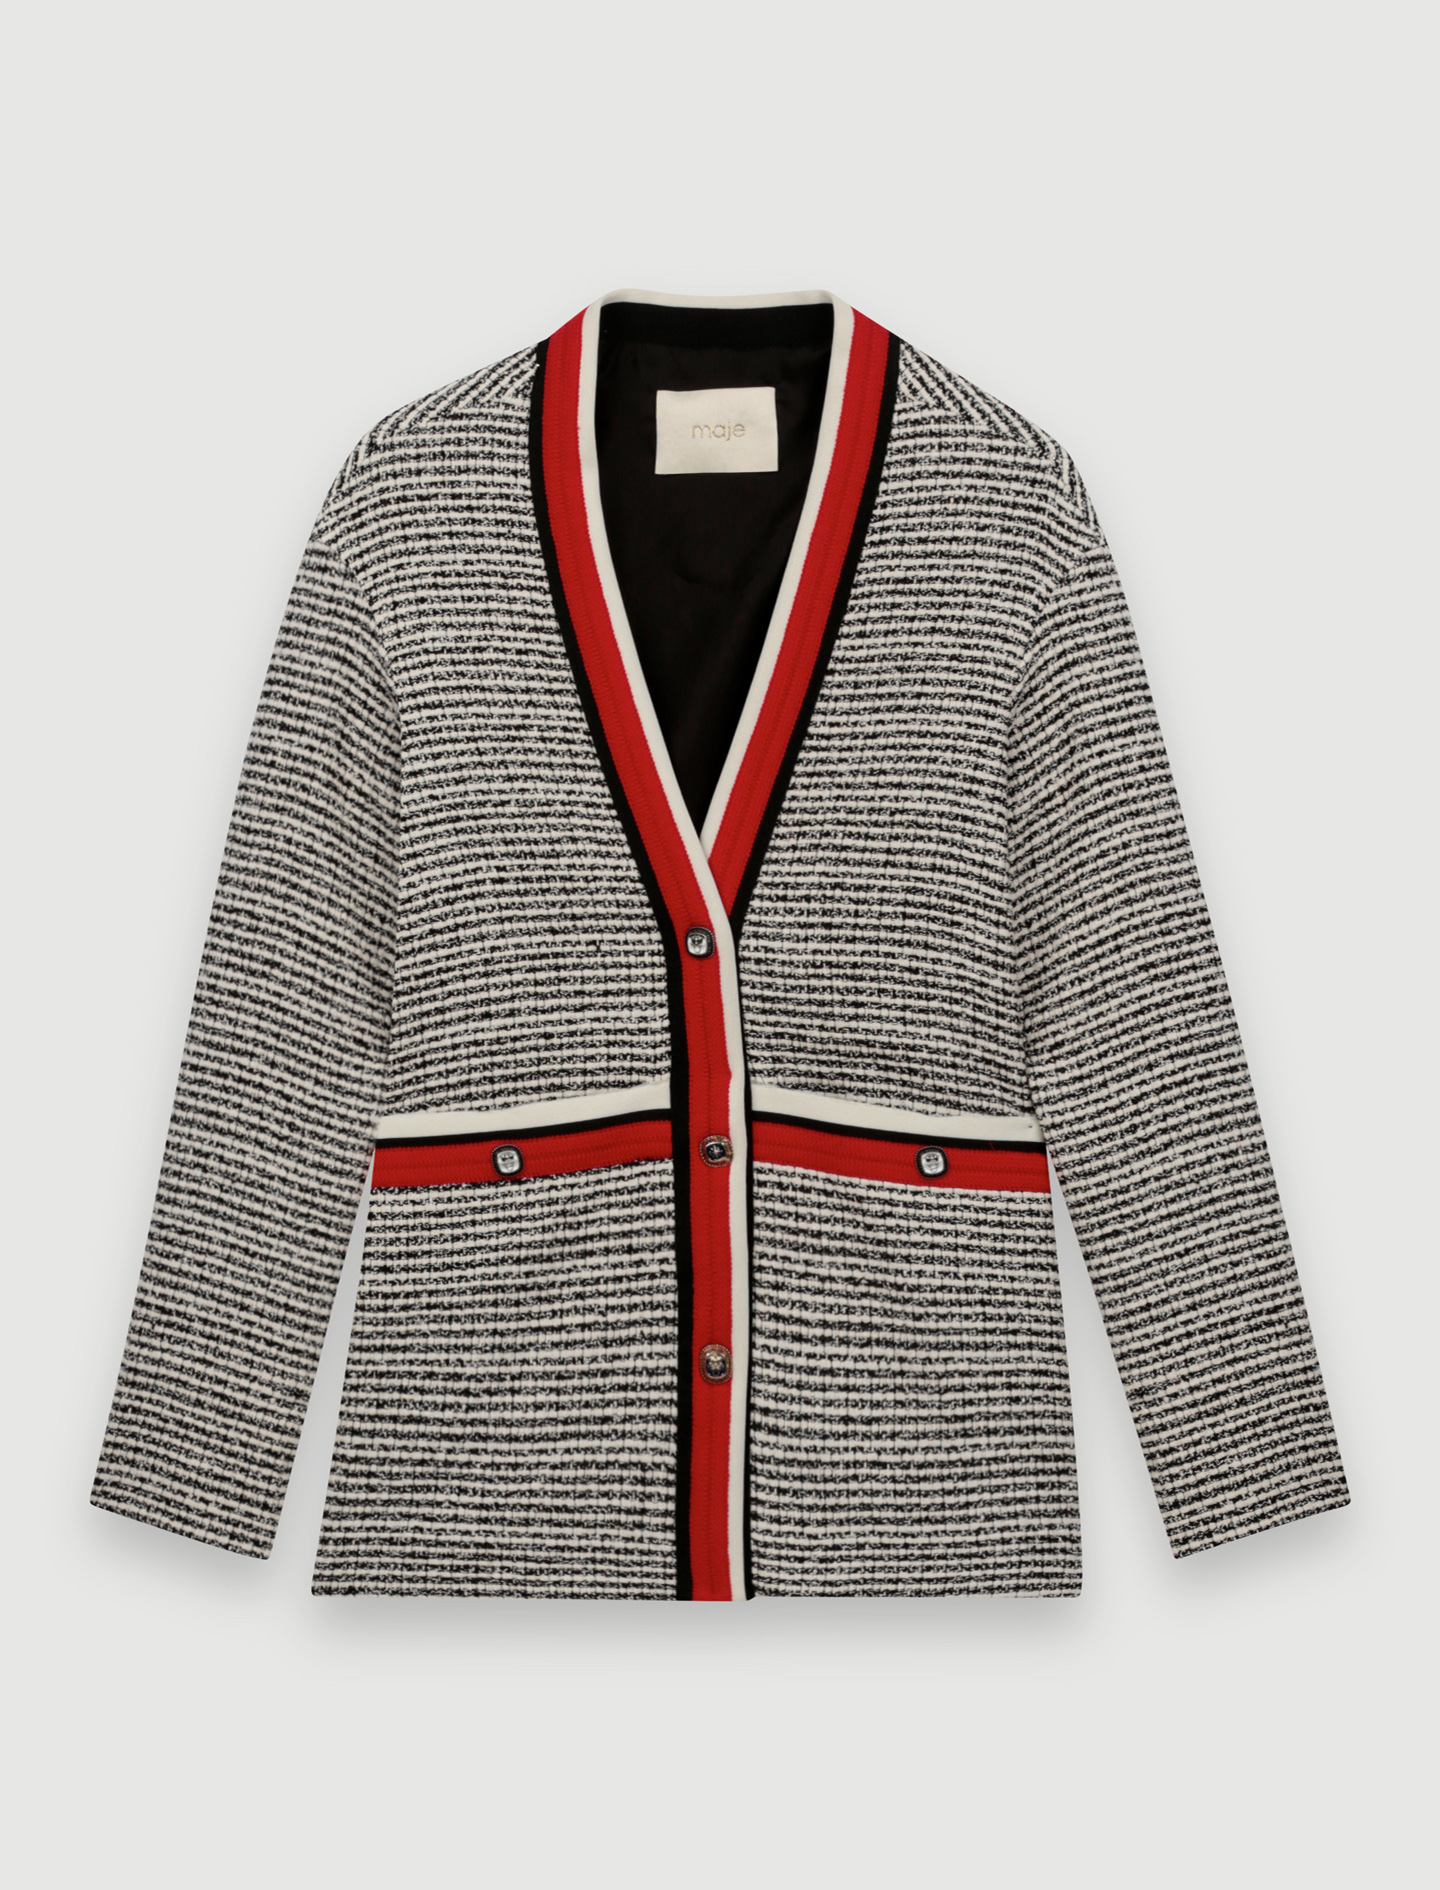 Tweed-effect cardigan, colourful bands - Multi-colour